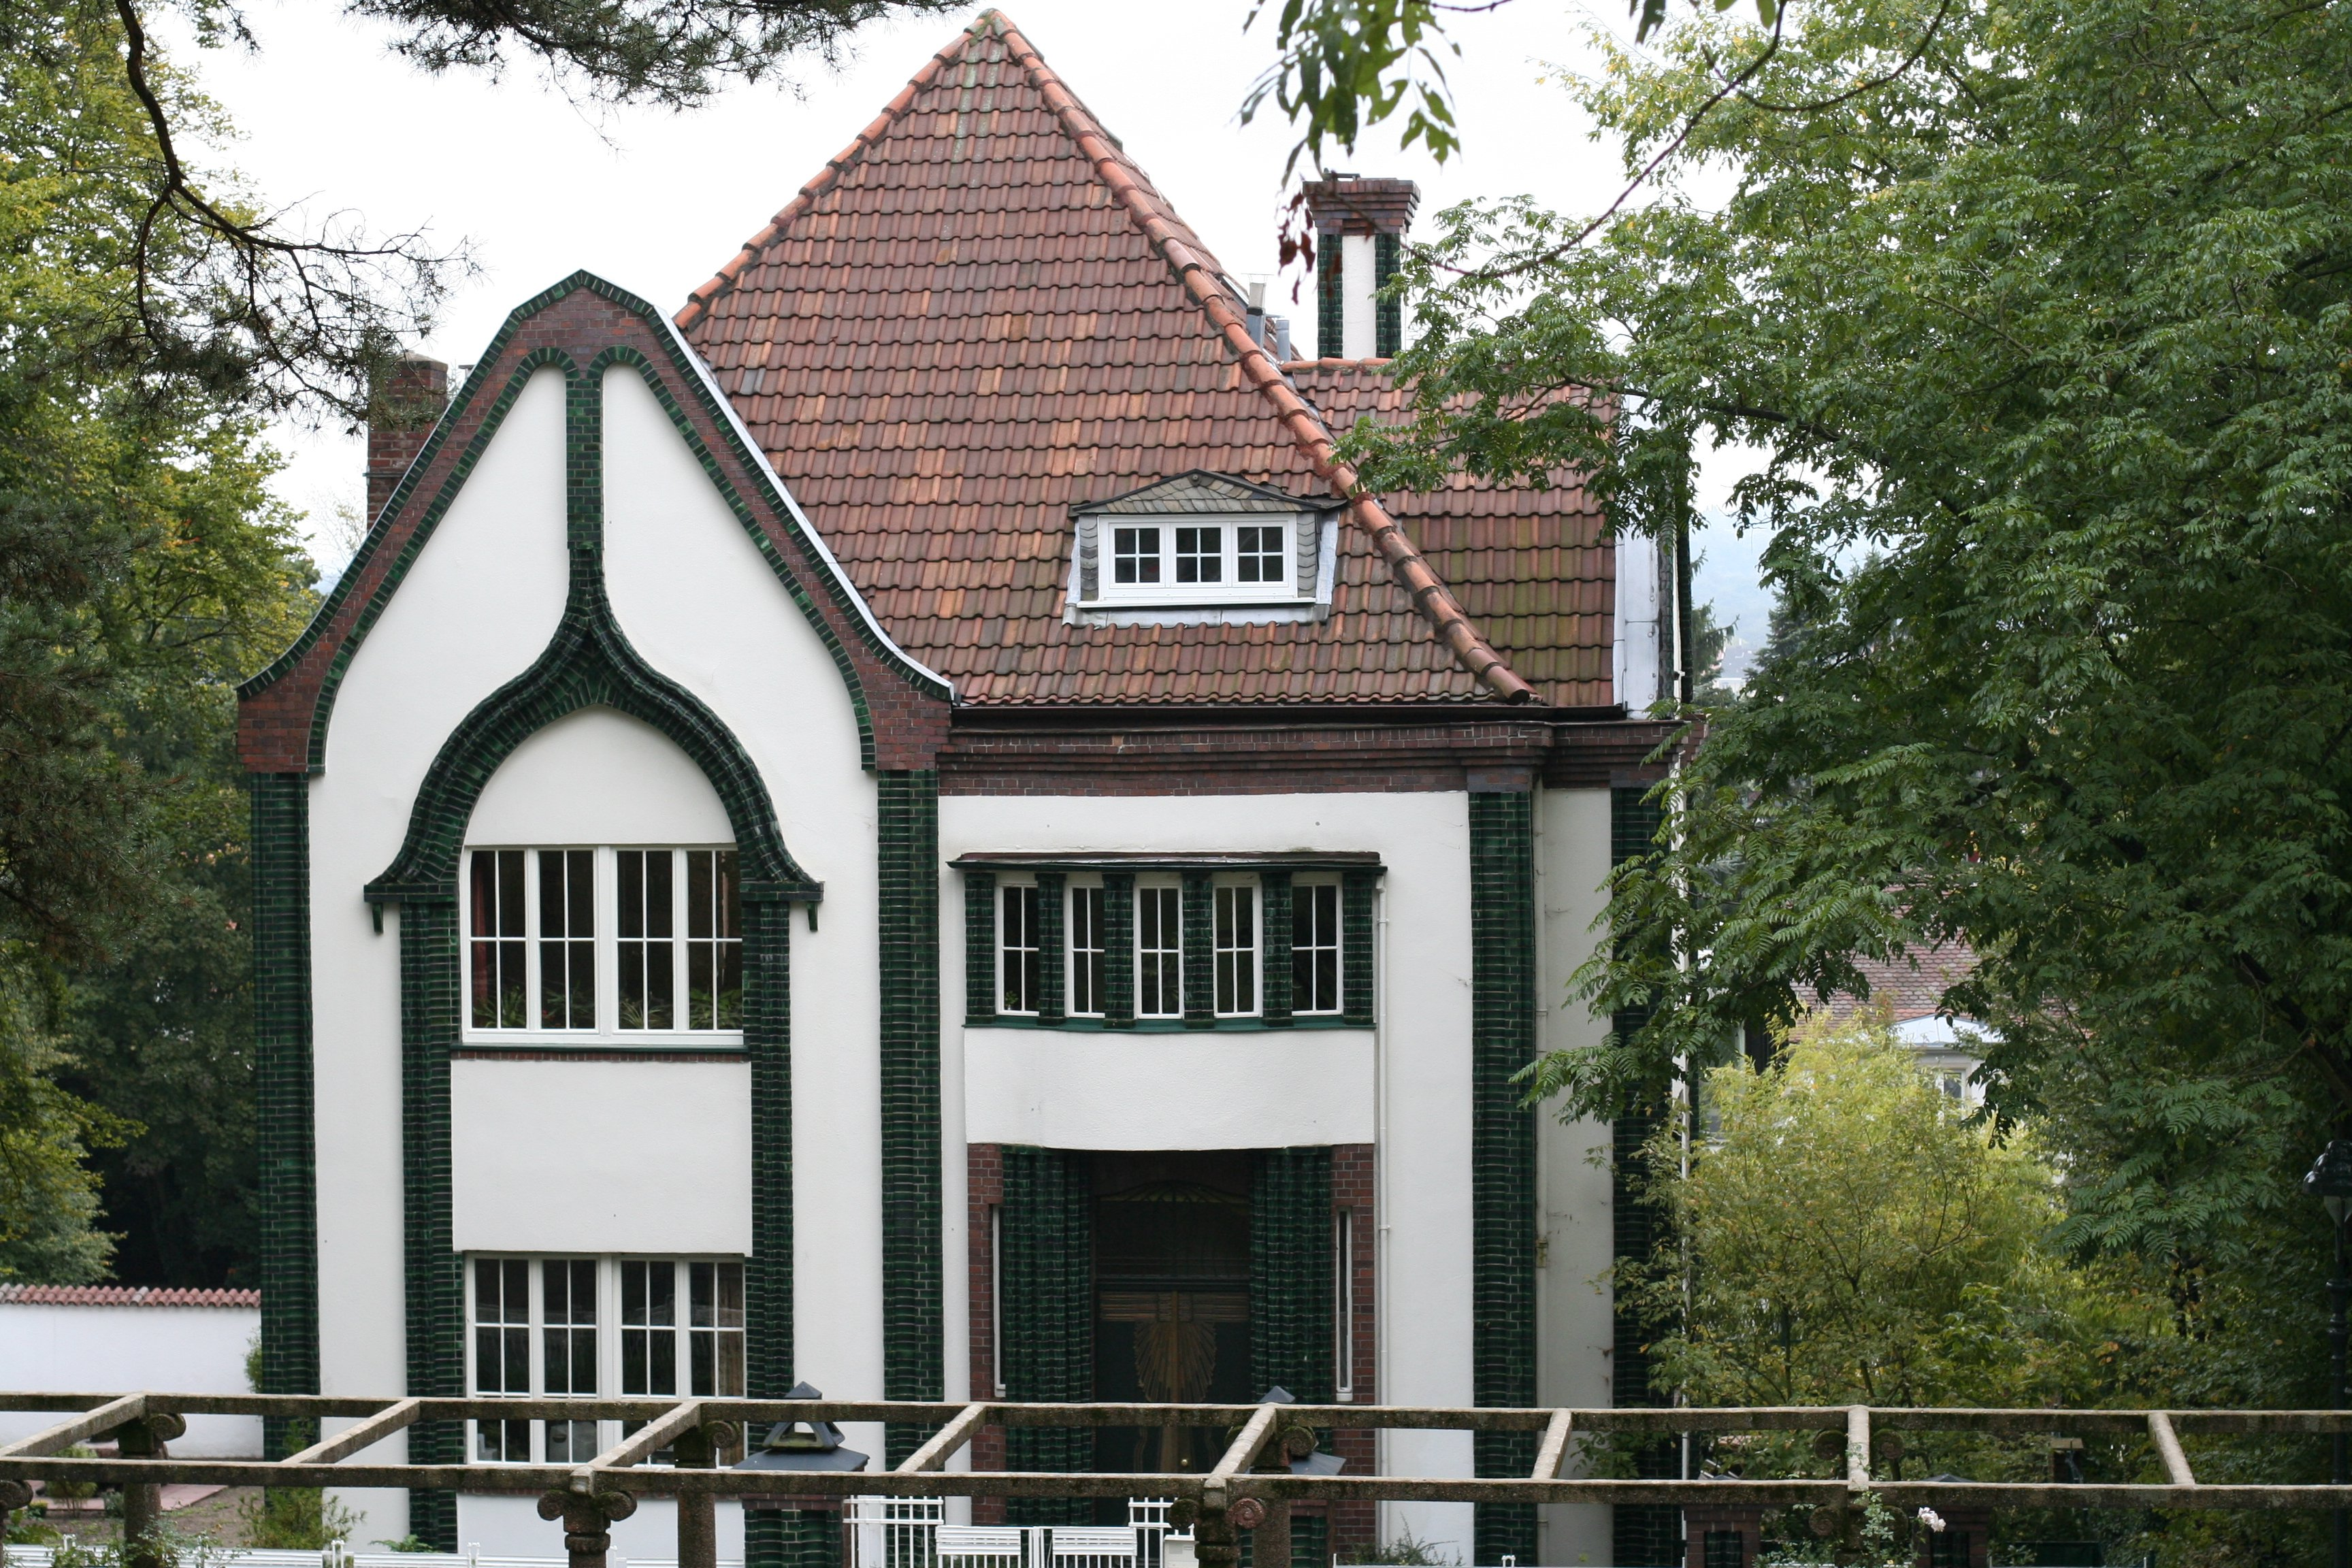 100 Architects' Houses Series #6. Peter Behrens and His 1901 Home in Mathildenhohe, Alexandraweg, Darmstadt